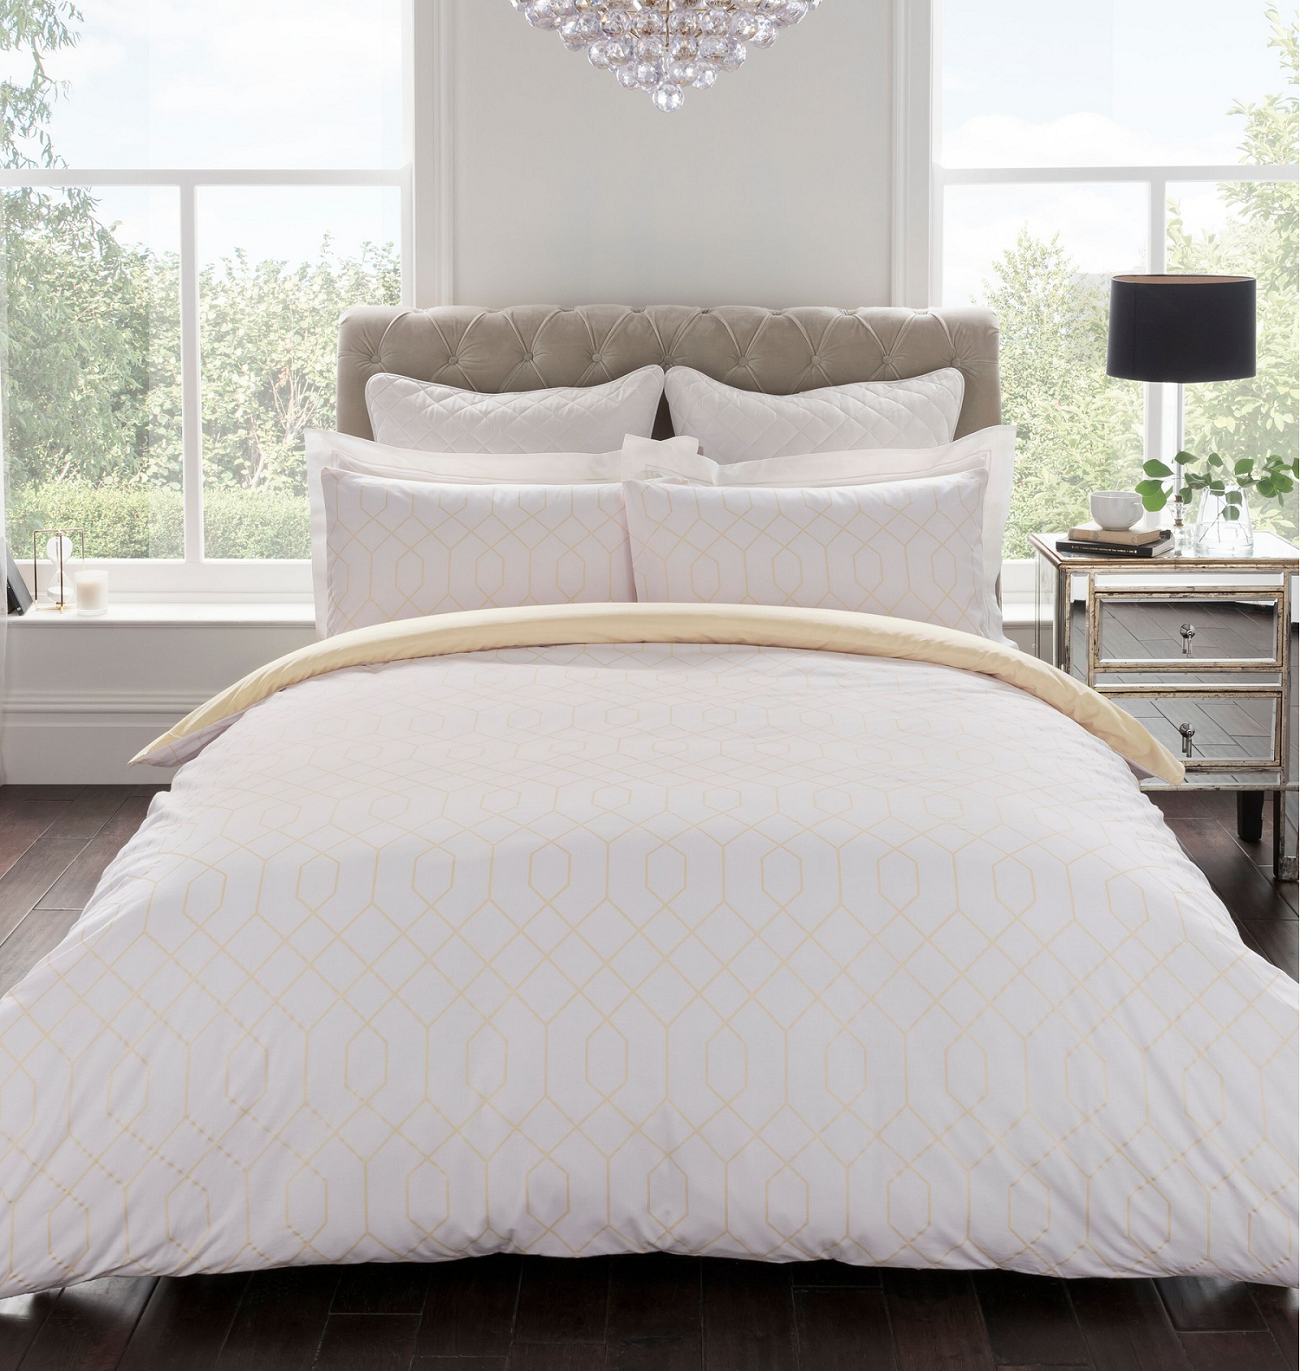 Sam Faiers Thea Duvet Cover Set